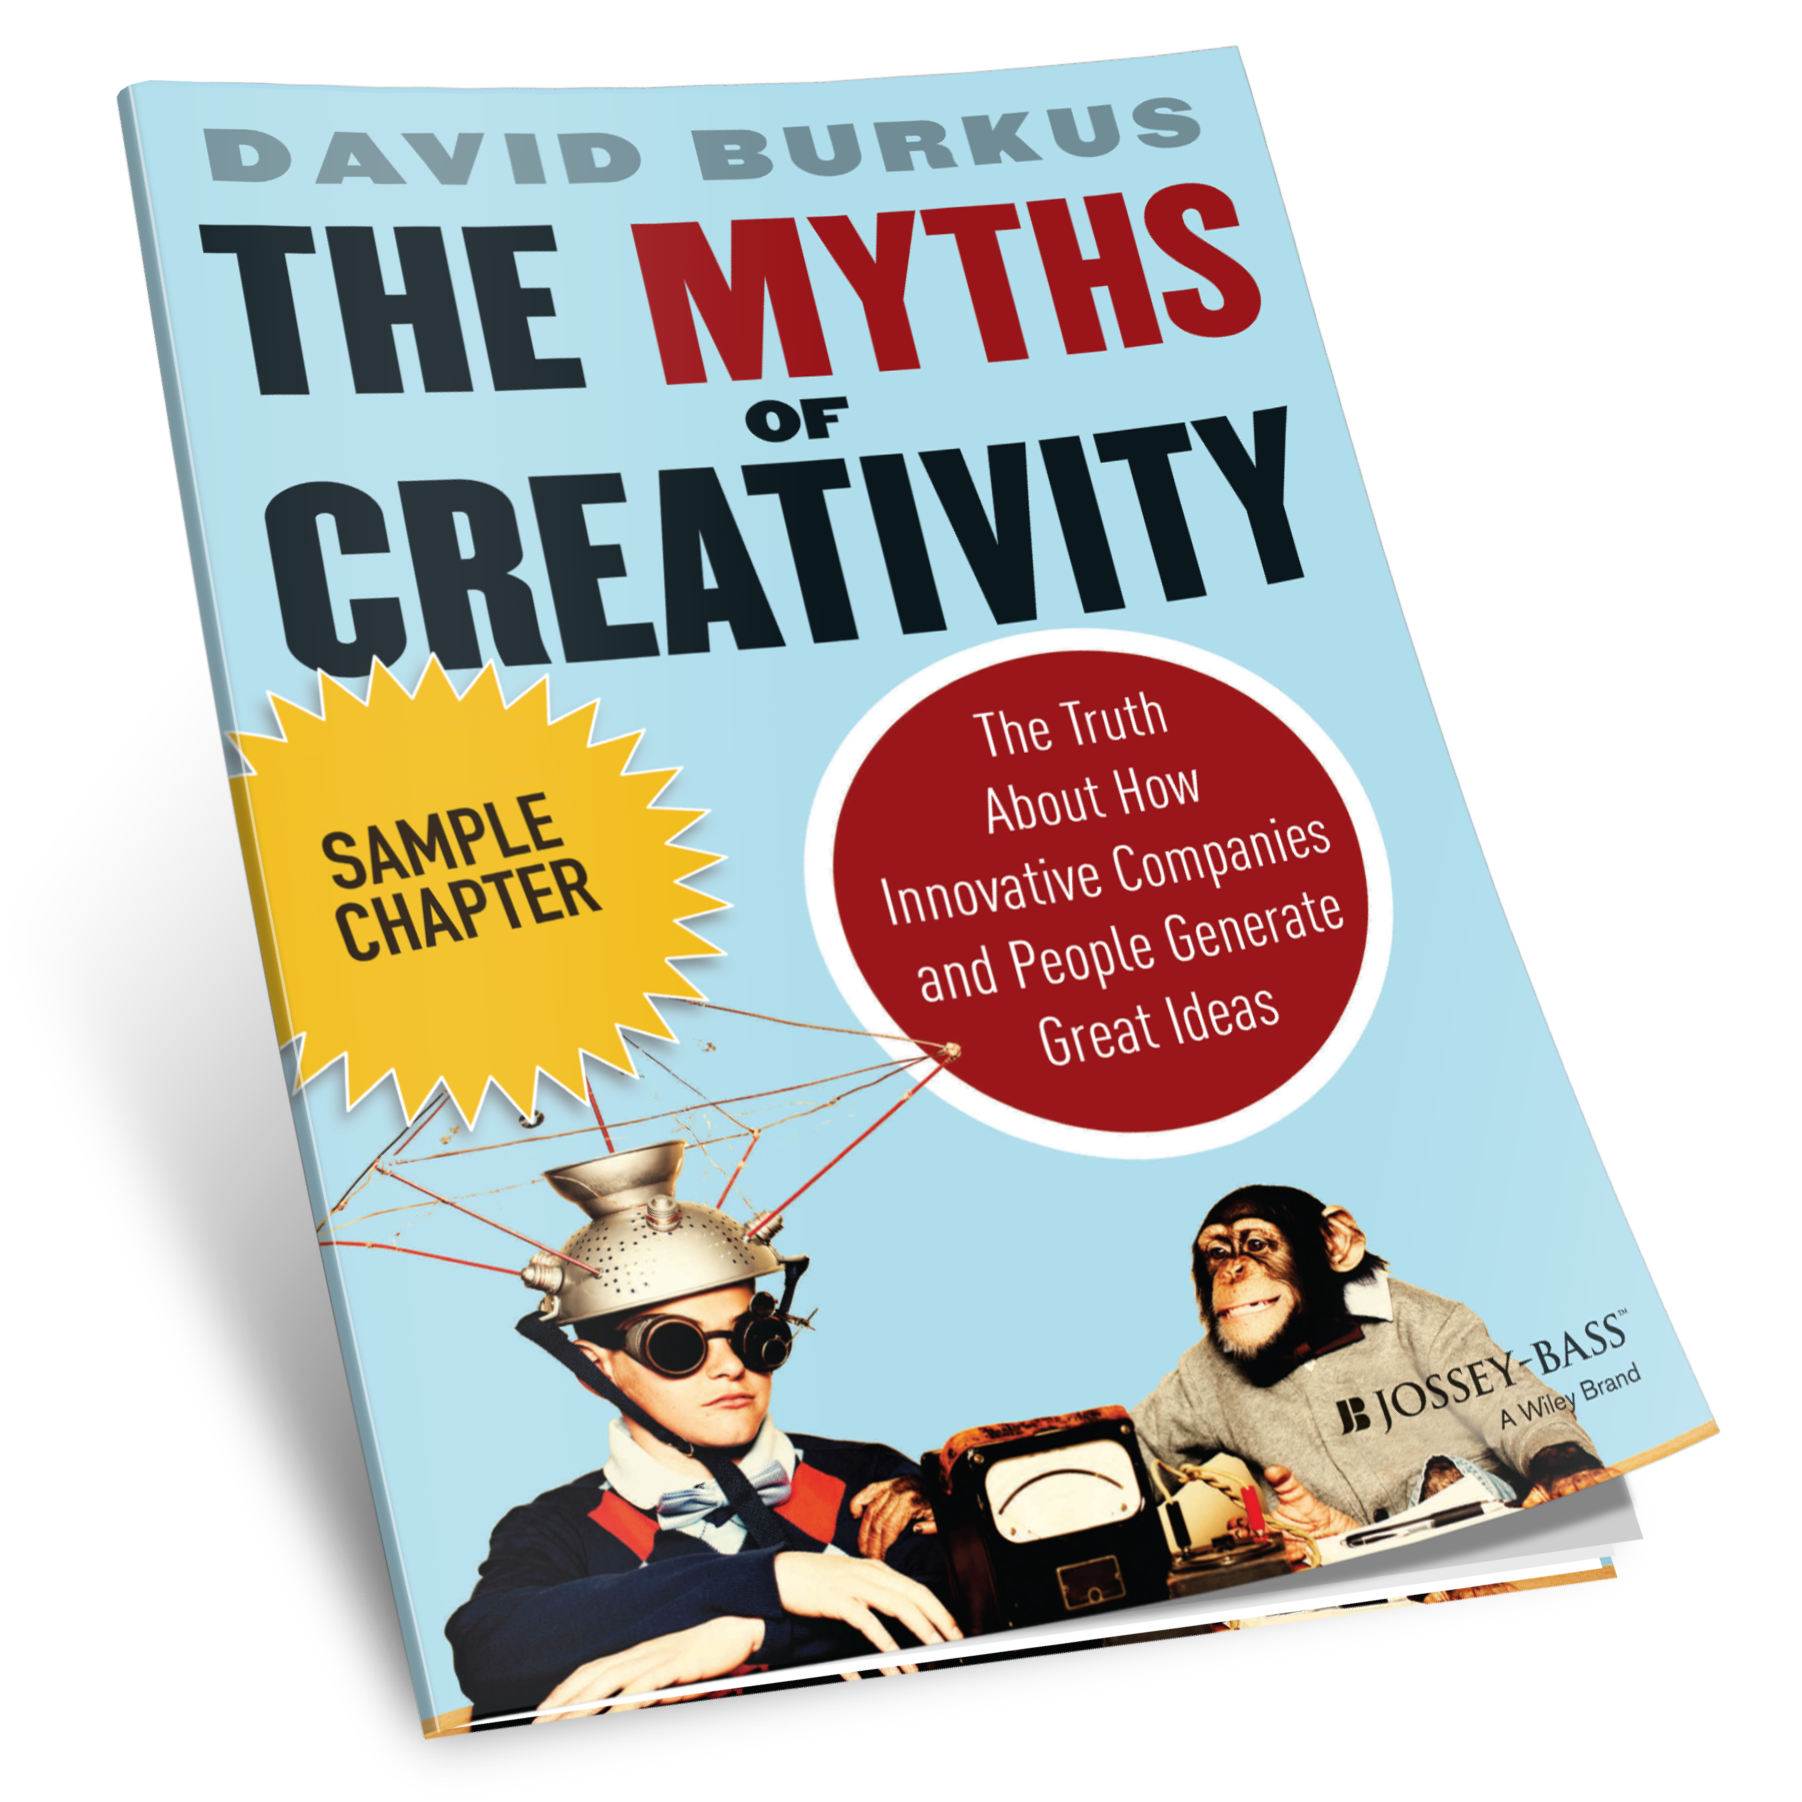 myths of creativity resources david burkus the myths of creativity sample chapter